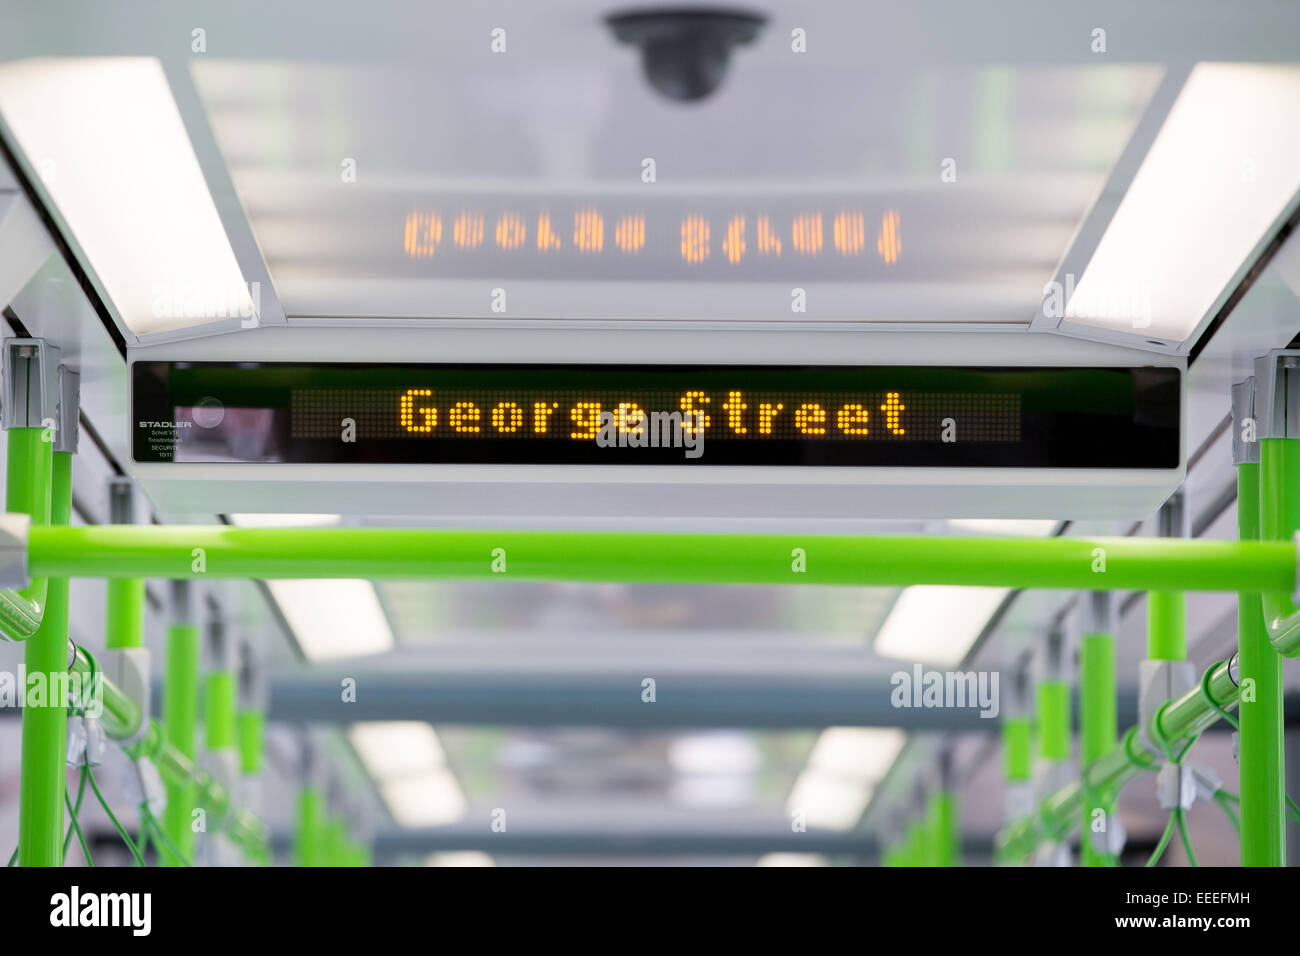 Close up of a digital display on a Variobahn tram - Stock Image